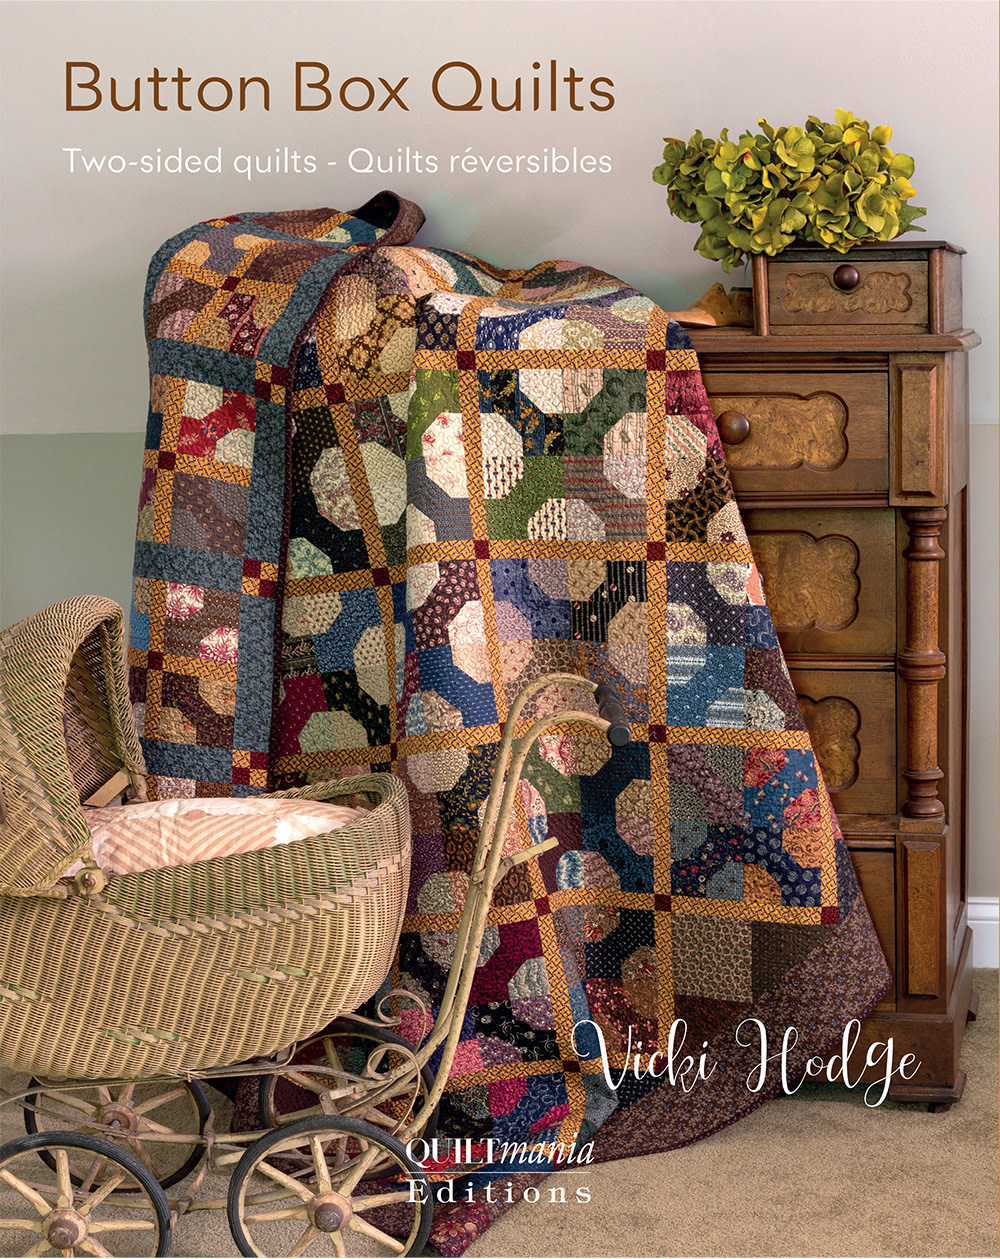 Quiltmania Button Box Quilts - Vicki Hodge